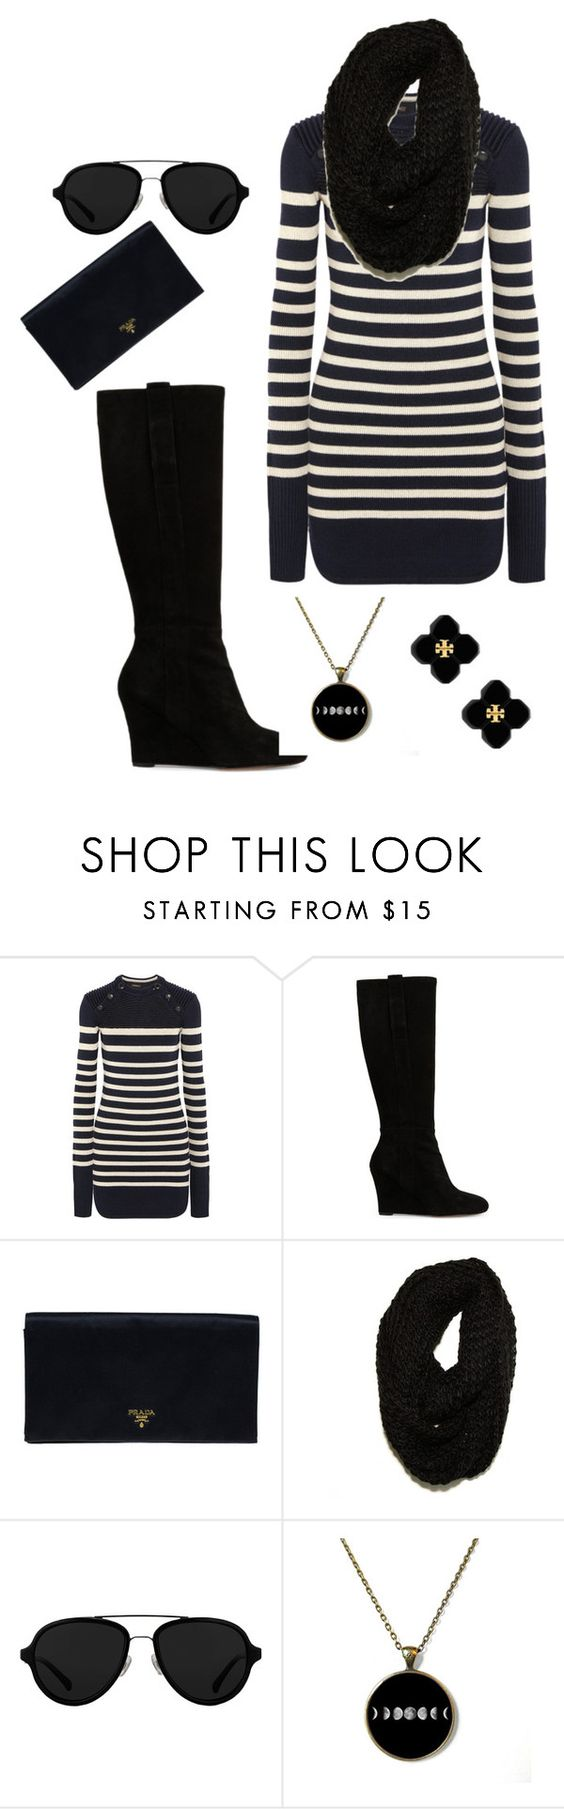 """""""Untitled #541"""" by peach-princess ❤ liked on Polyvore featuring Isabel Marant, Nine West, Prada, Paula Bianco, 3.1 Phillip Lim and Tory Burch"""